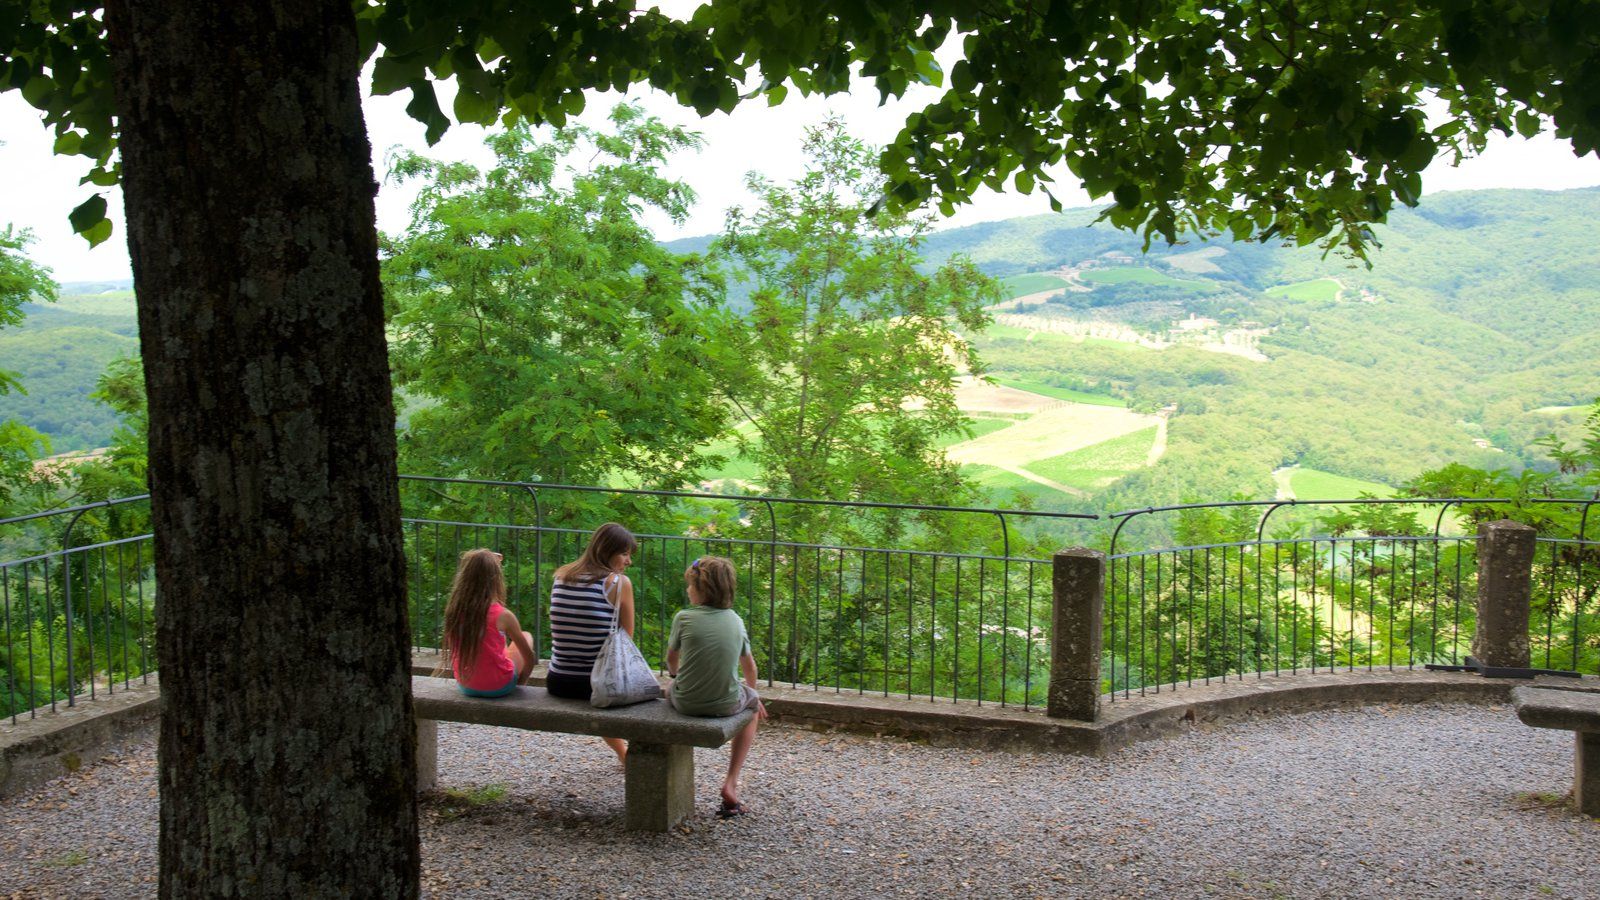 Radda in Chianti showing views as well as a family